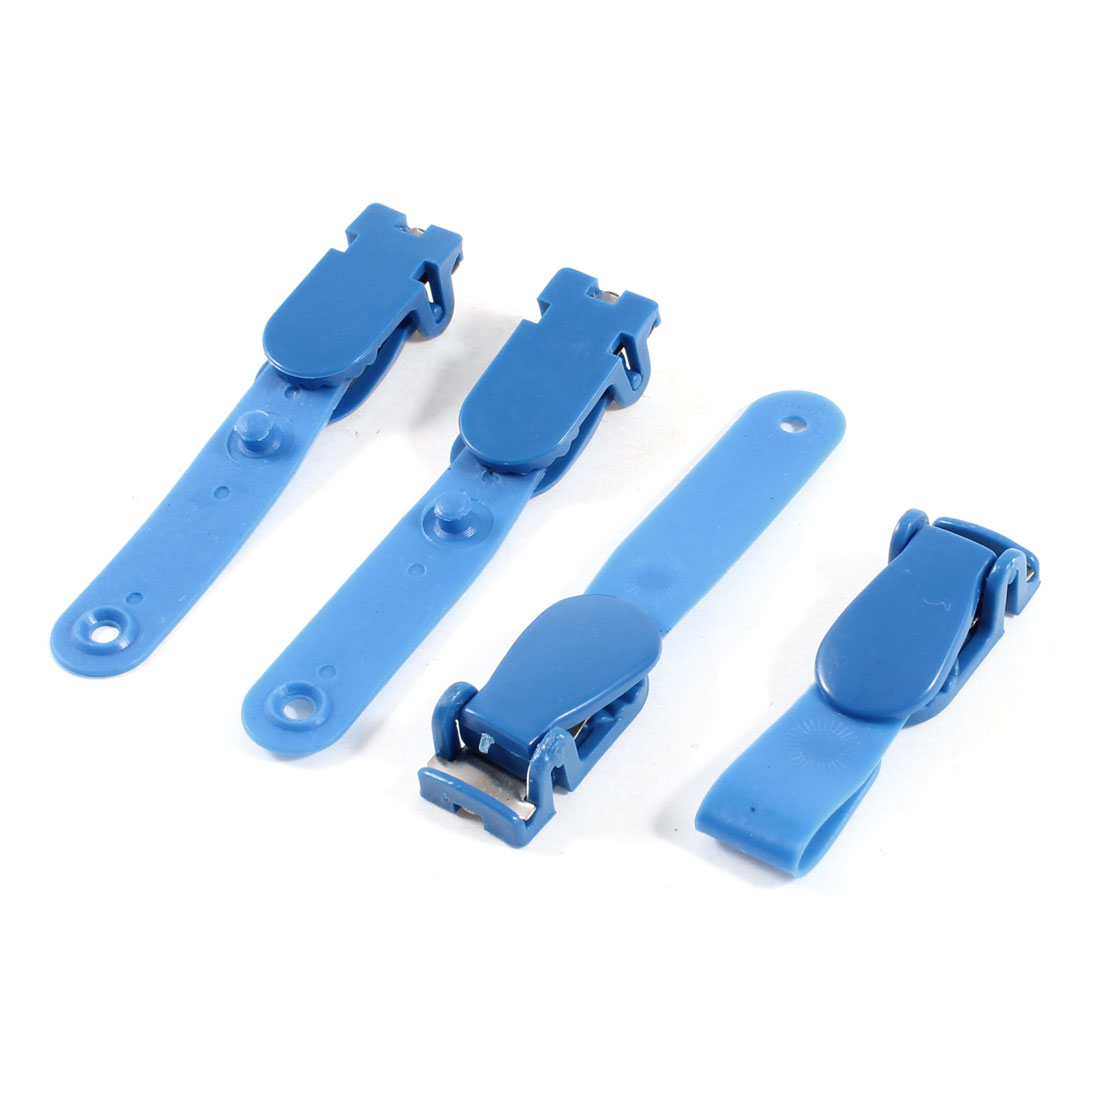 4 Pcs Blue Plastic ID Card Holder Name Badge Clips Clamps